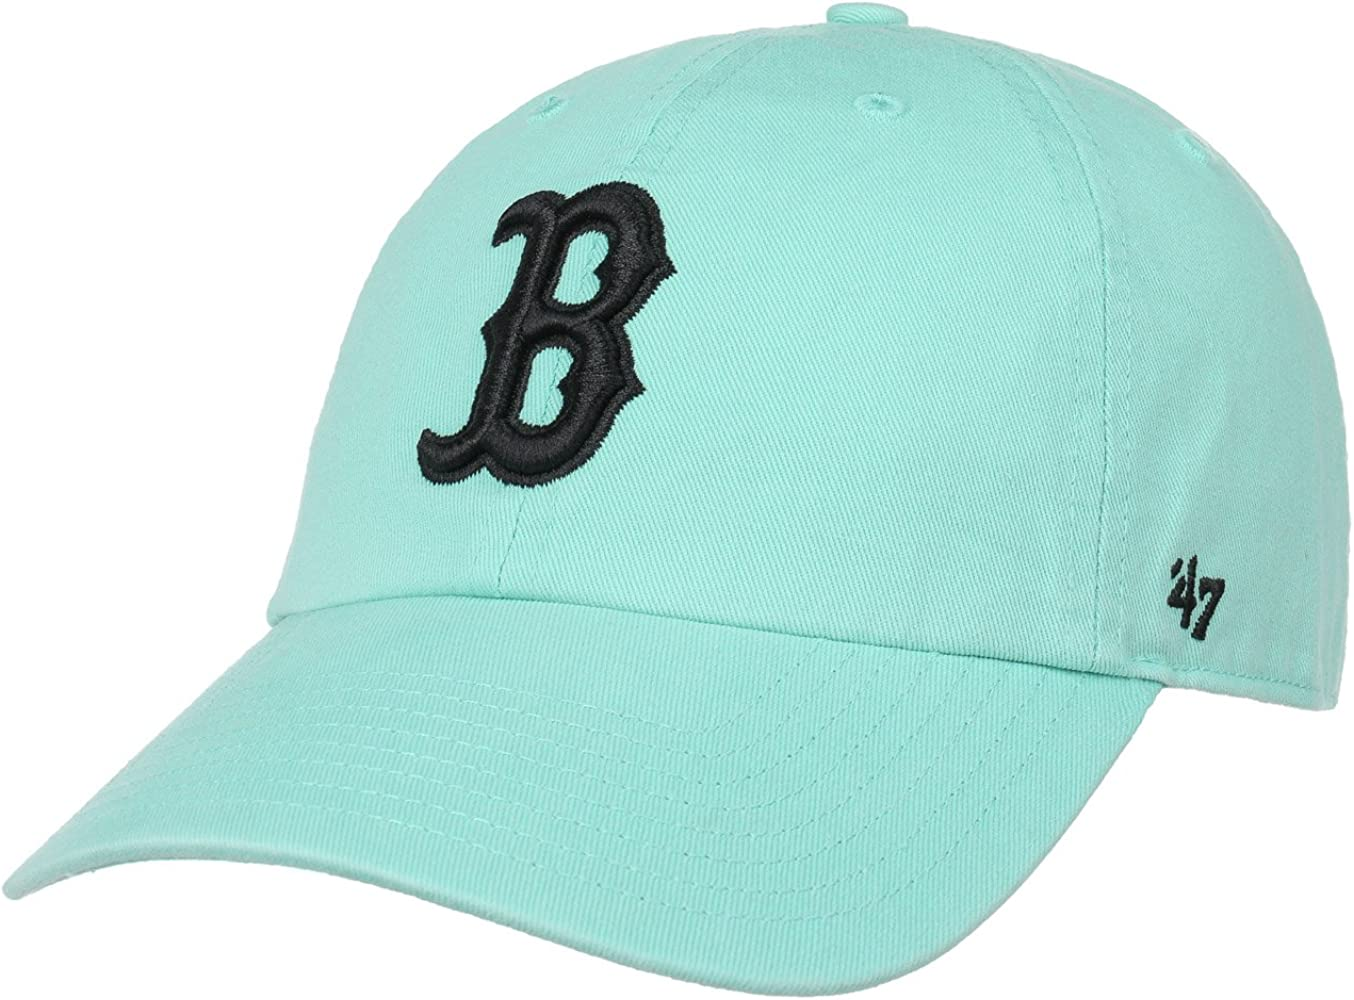 Gorra Clean Up Twotone Red Sox by 47 Brand gorragorra de beisbol ...